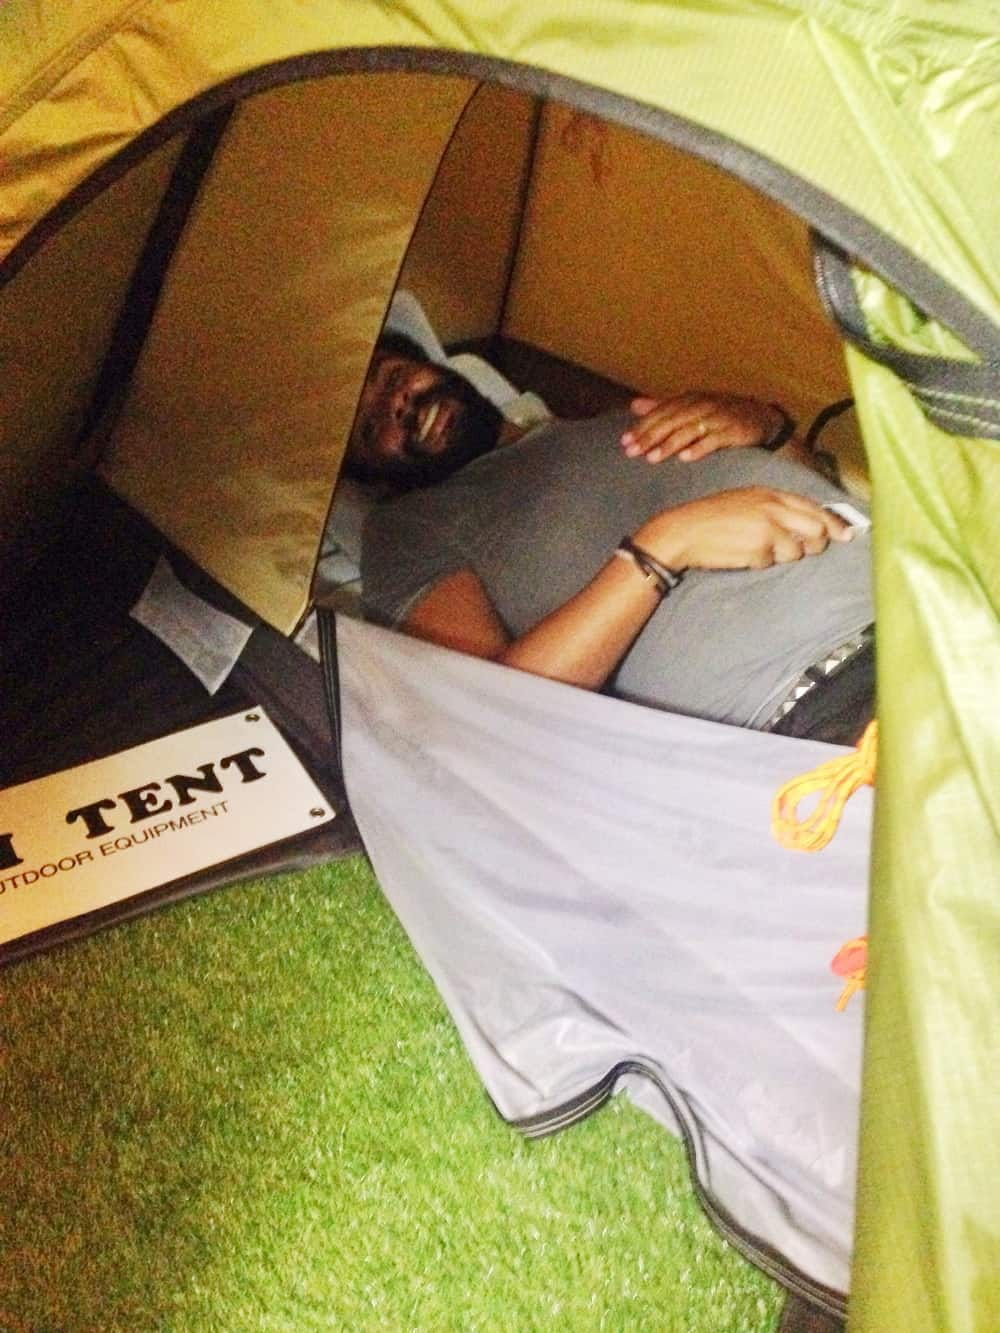 James on a tent